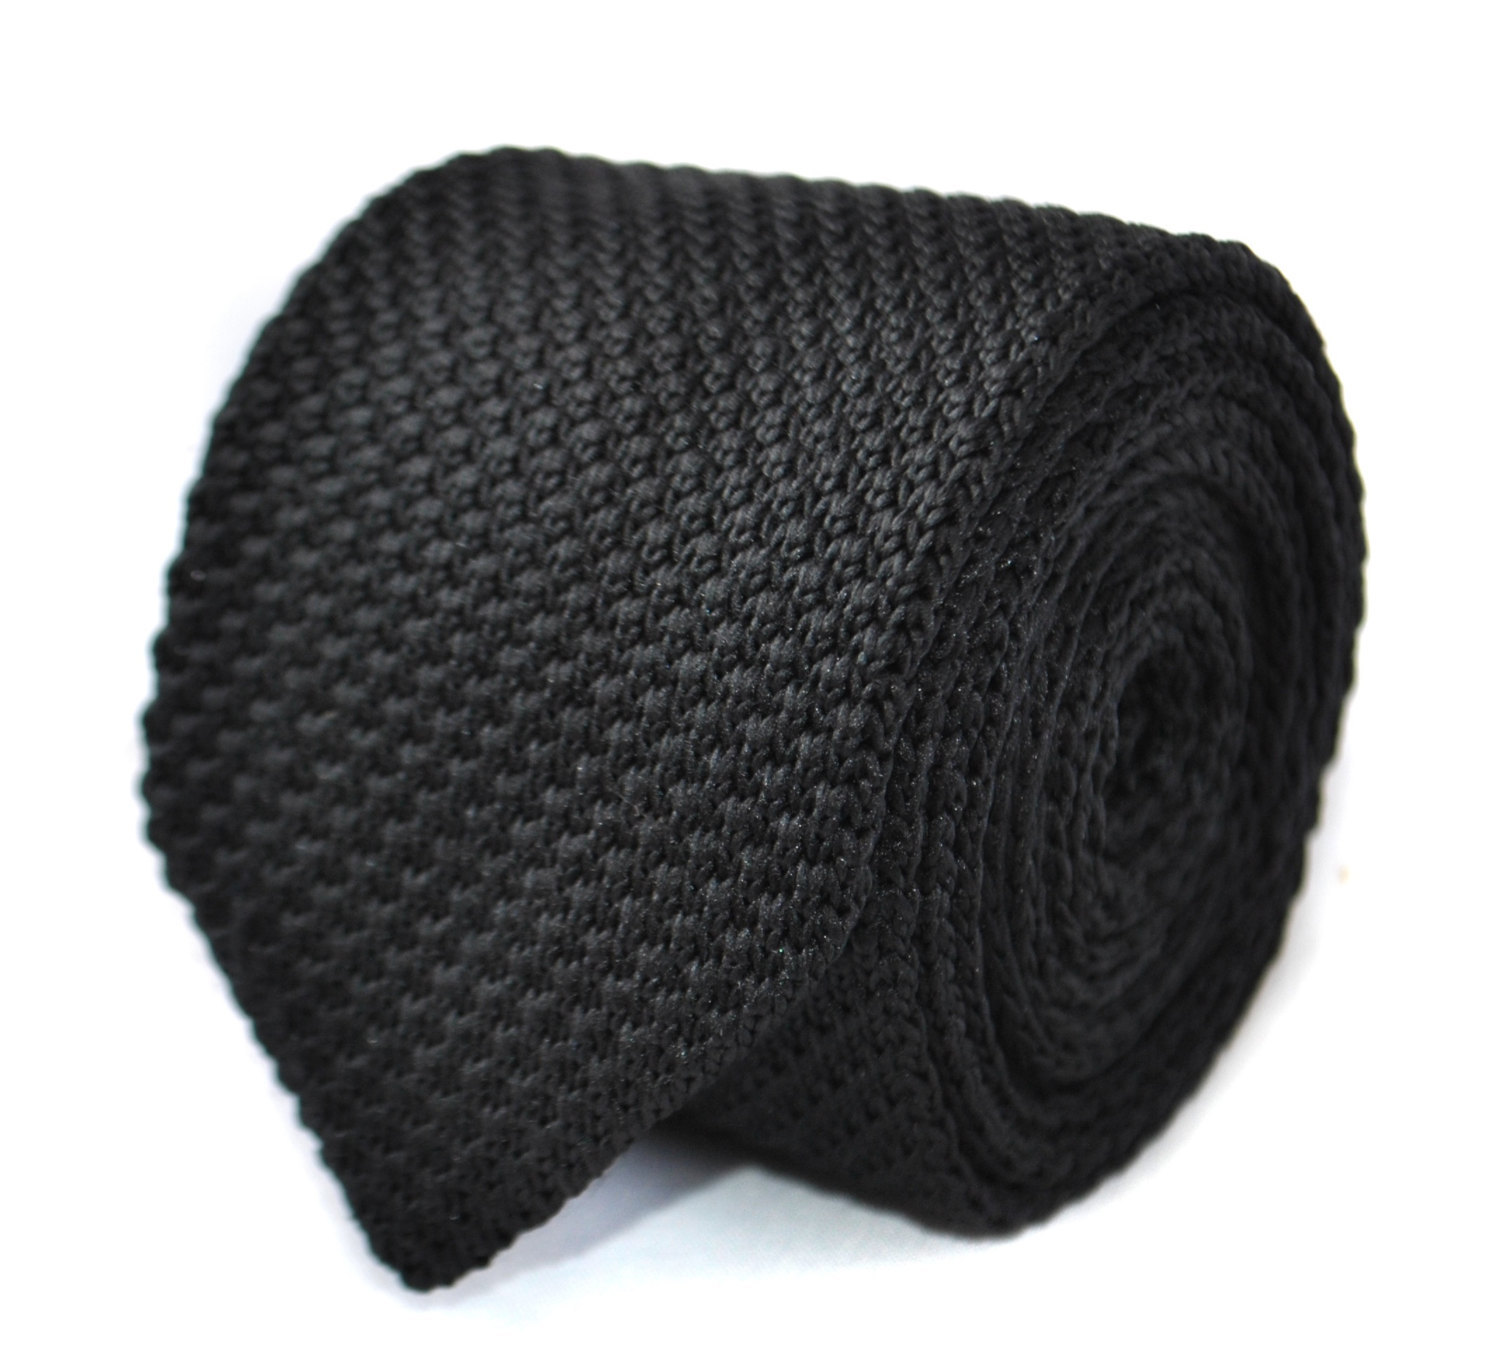 Plain skinny black knitted tie with pointed end by Frederick Thomas FT2006